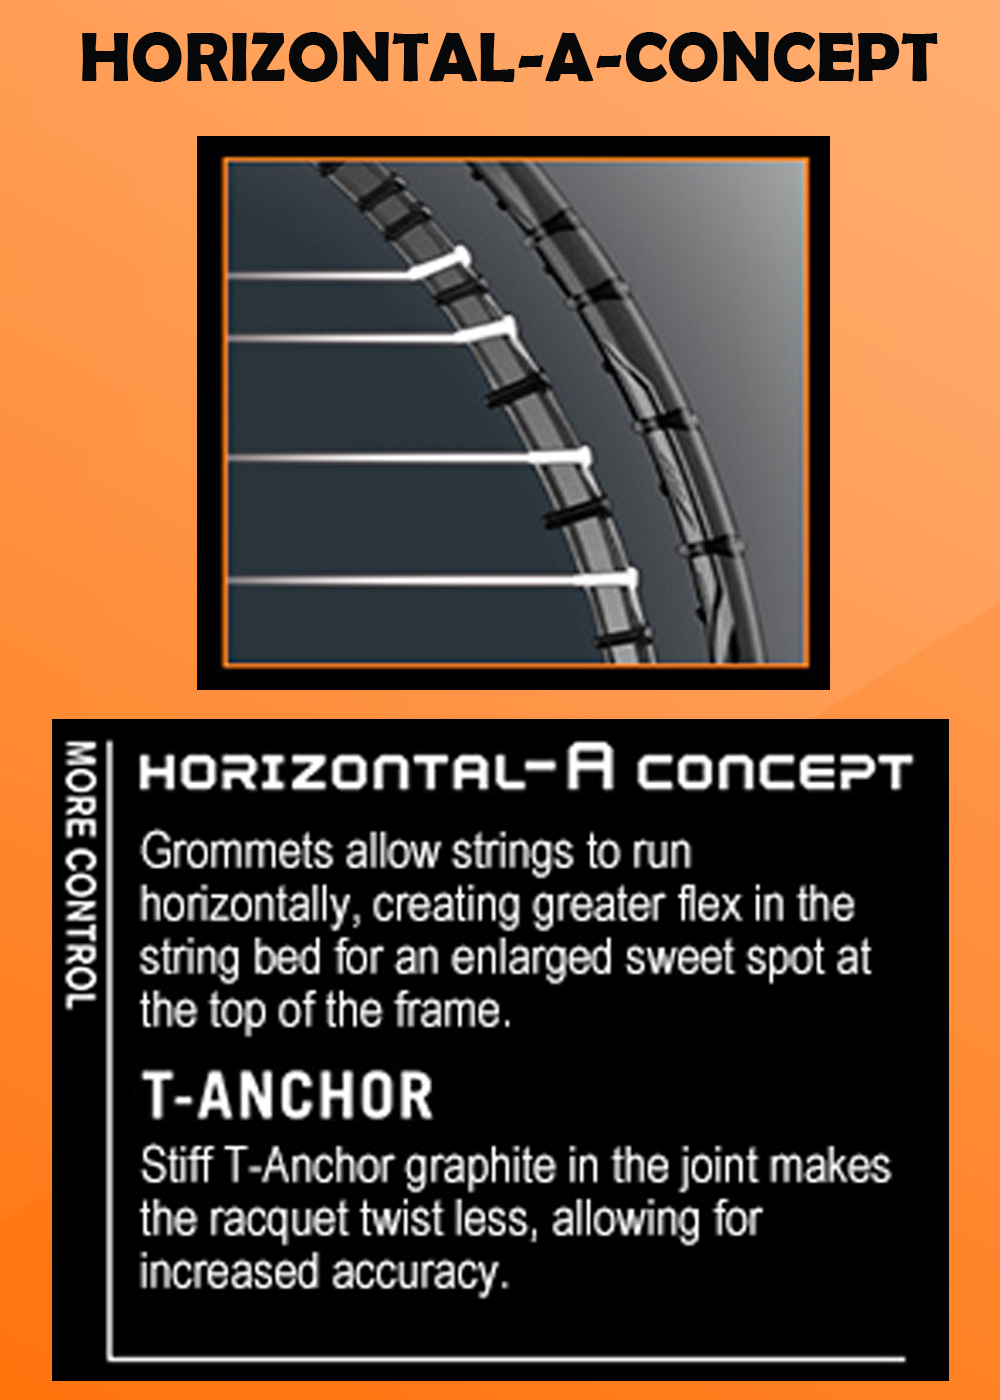 HORIZONTAL A CONCEPT TECHNOLOGY_E